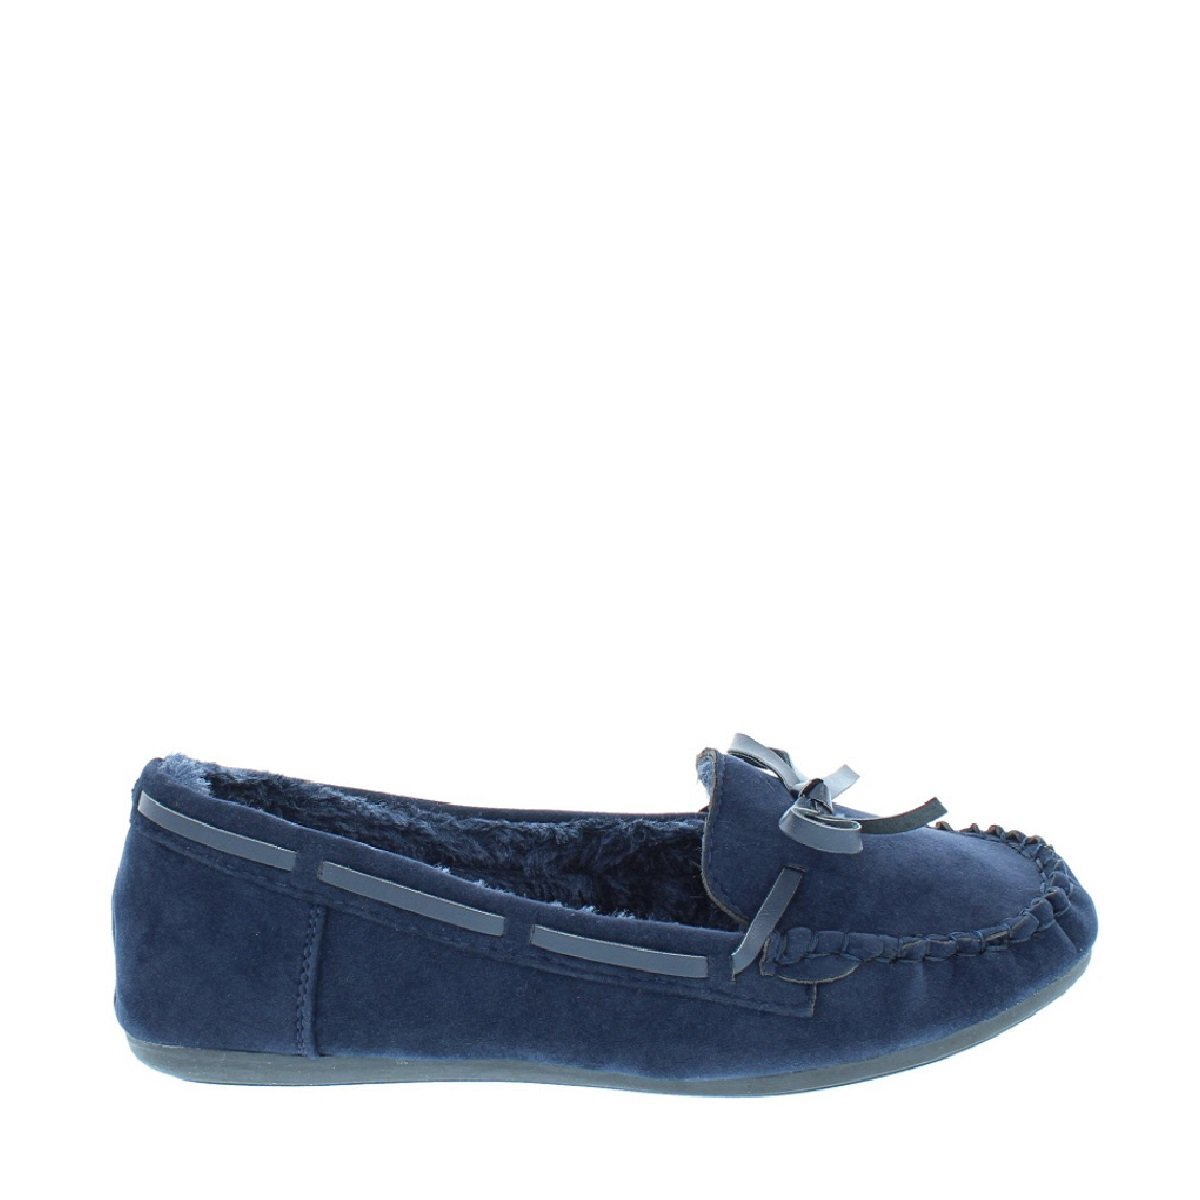 LOV Shoes Women's Faux Suede Fur Moccasin Slippers (Navy, 8 B(M) US) by LOV Shoes